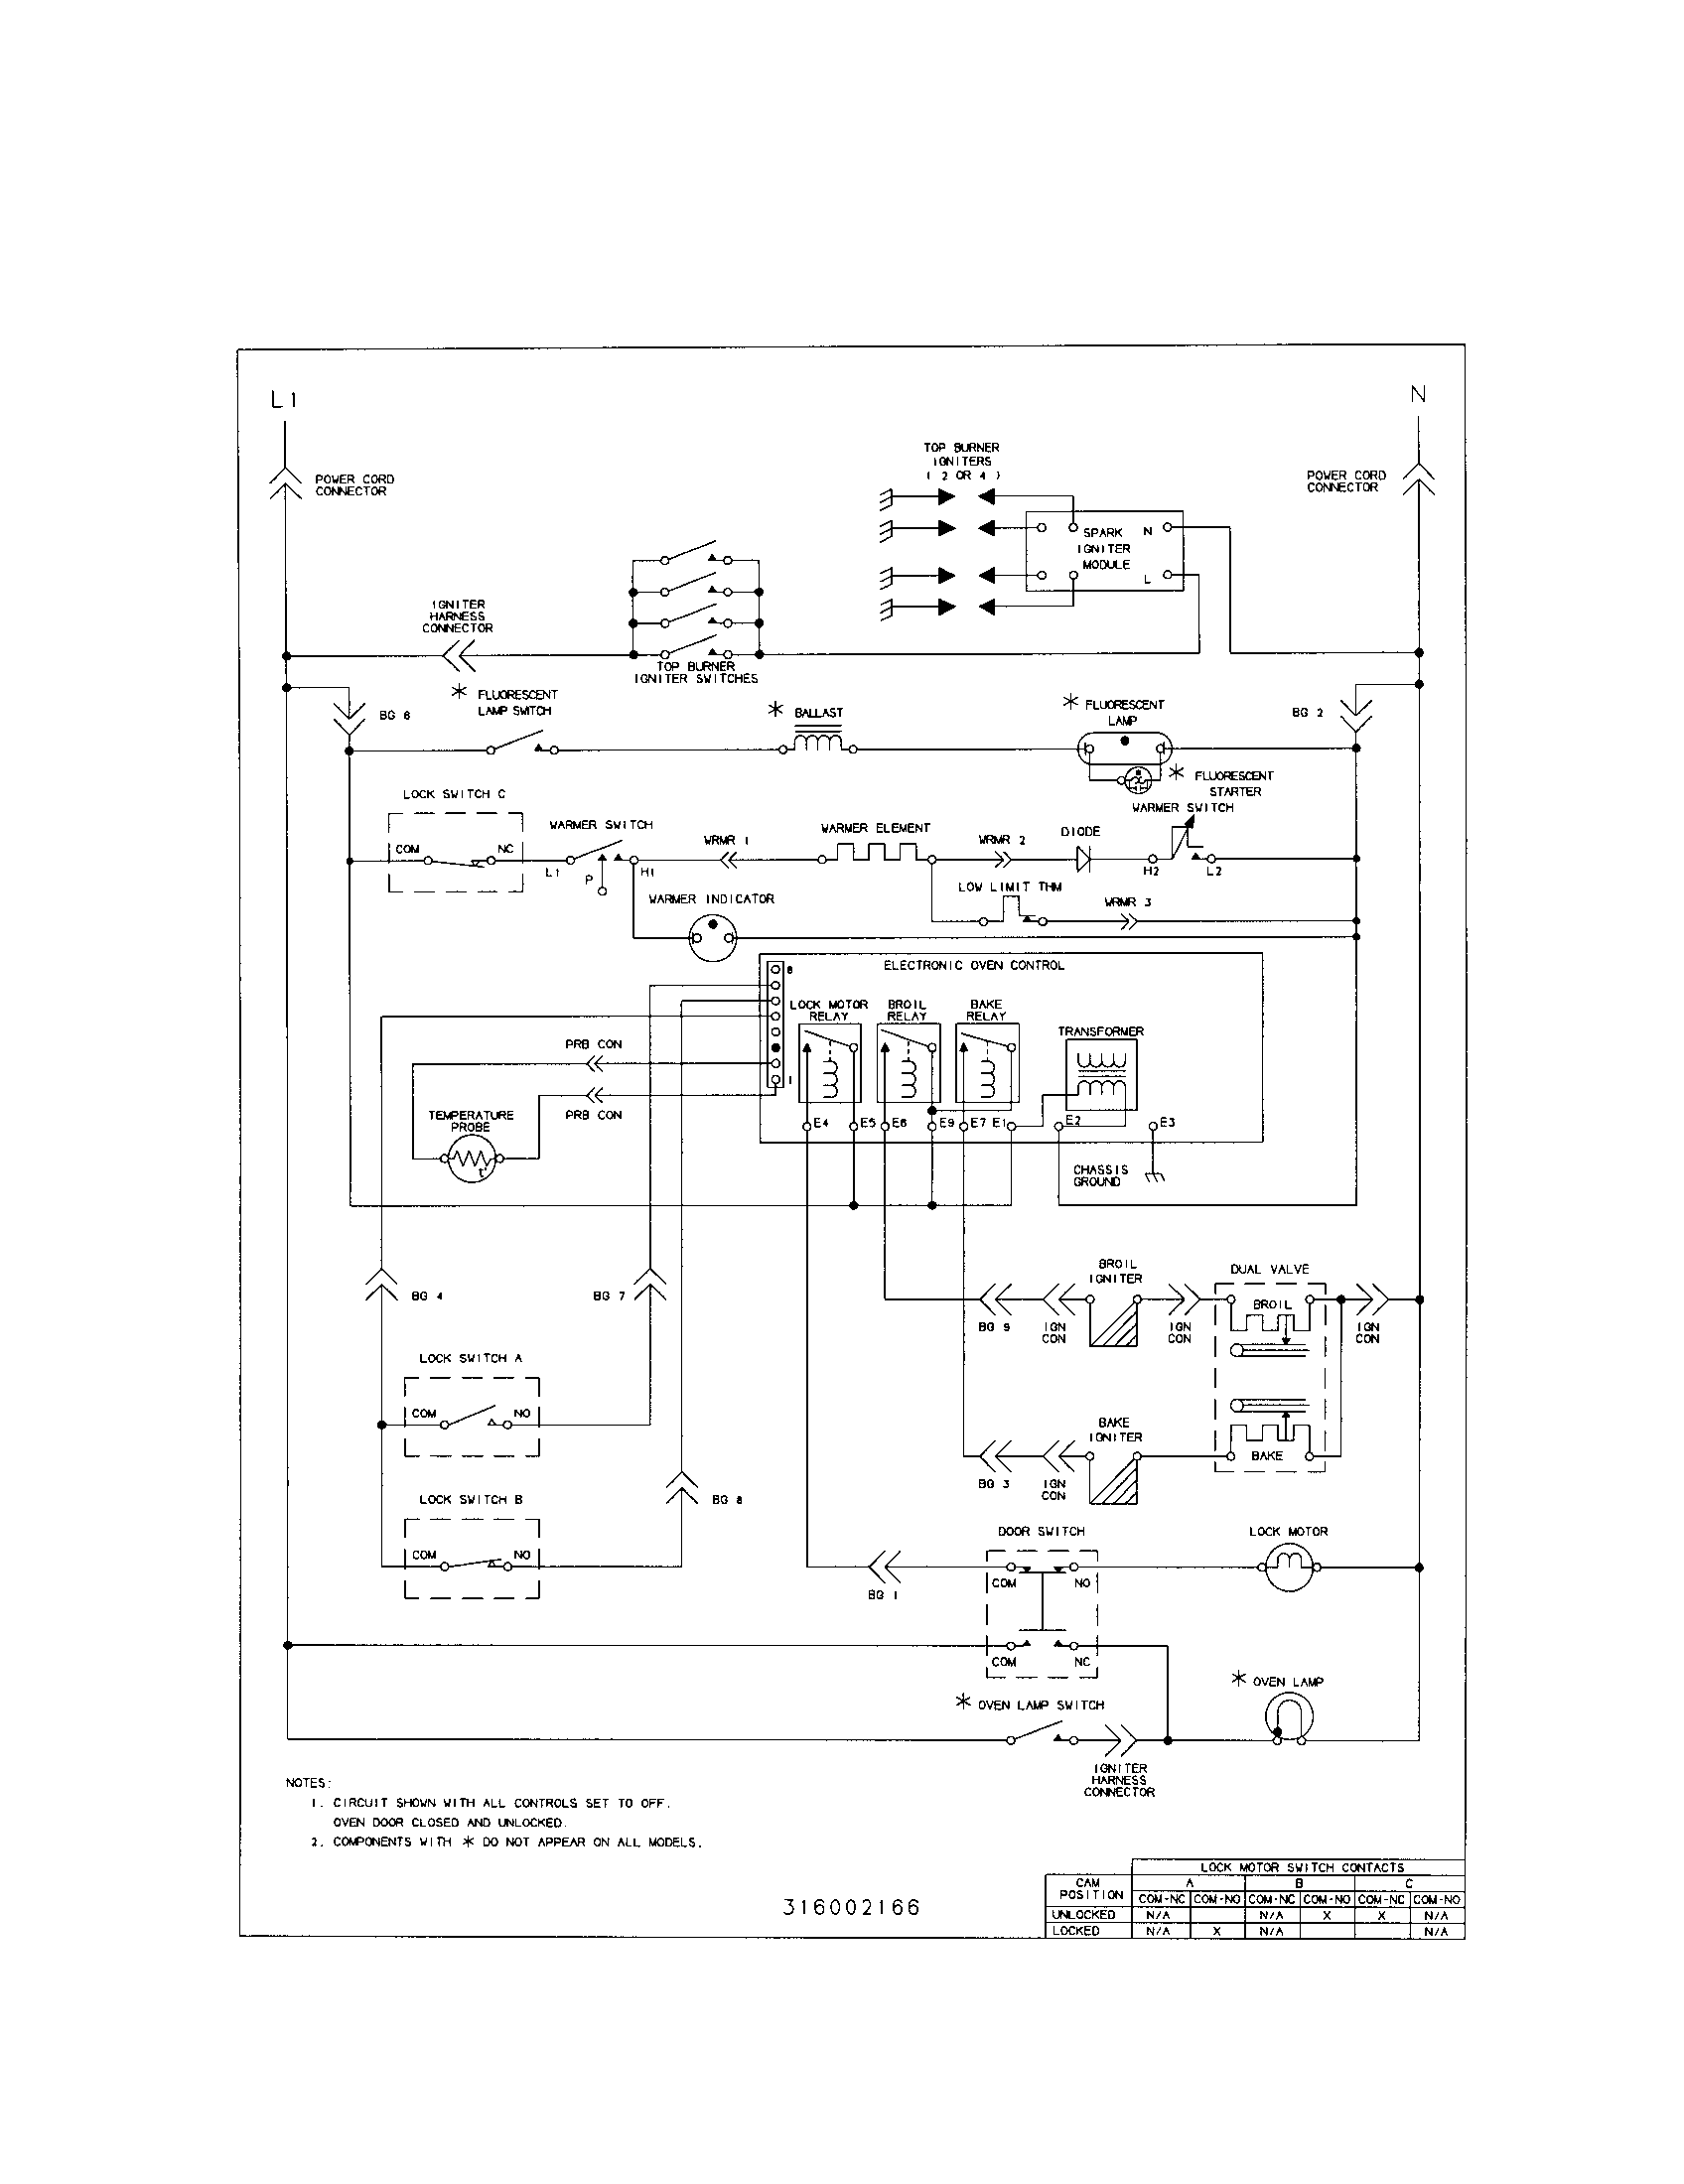 Frigidaire Wiring Schematics Opinions About Diagram Valve Fgf379wecs Range Timer Stove Clocks And Appliance Timers Dryer